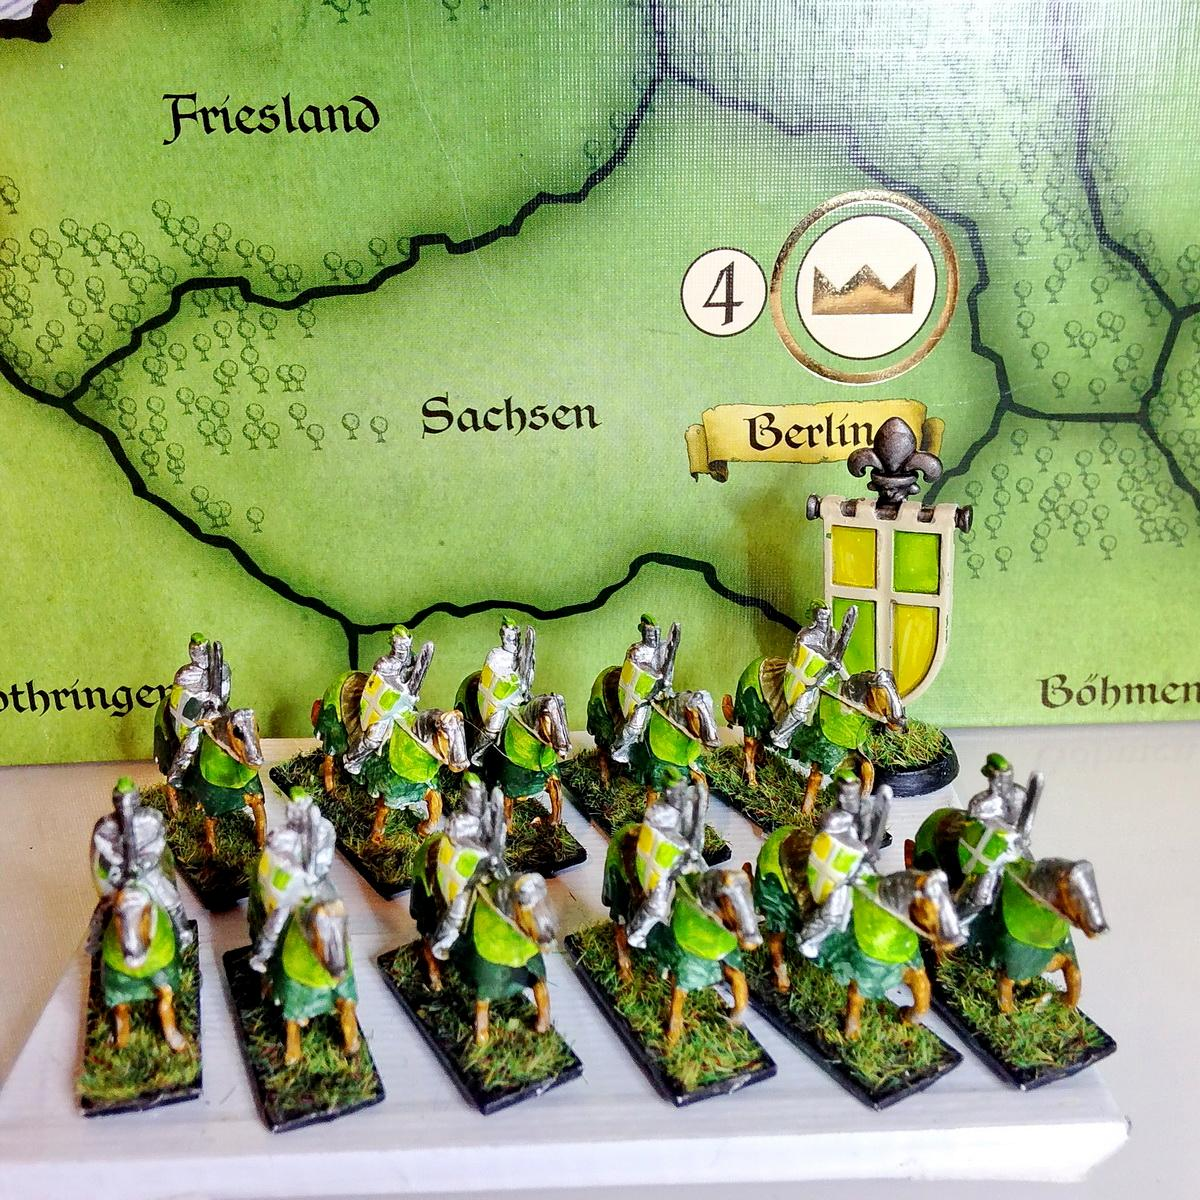 Bemalt, Dark Age, Merowinger, Middleage, Normannen, Osamnen, Painted, Risiko, Risiko Europa, Risk Europe Painted, Russians, Tabletop